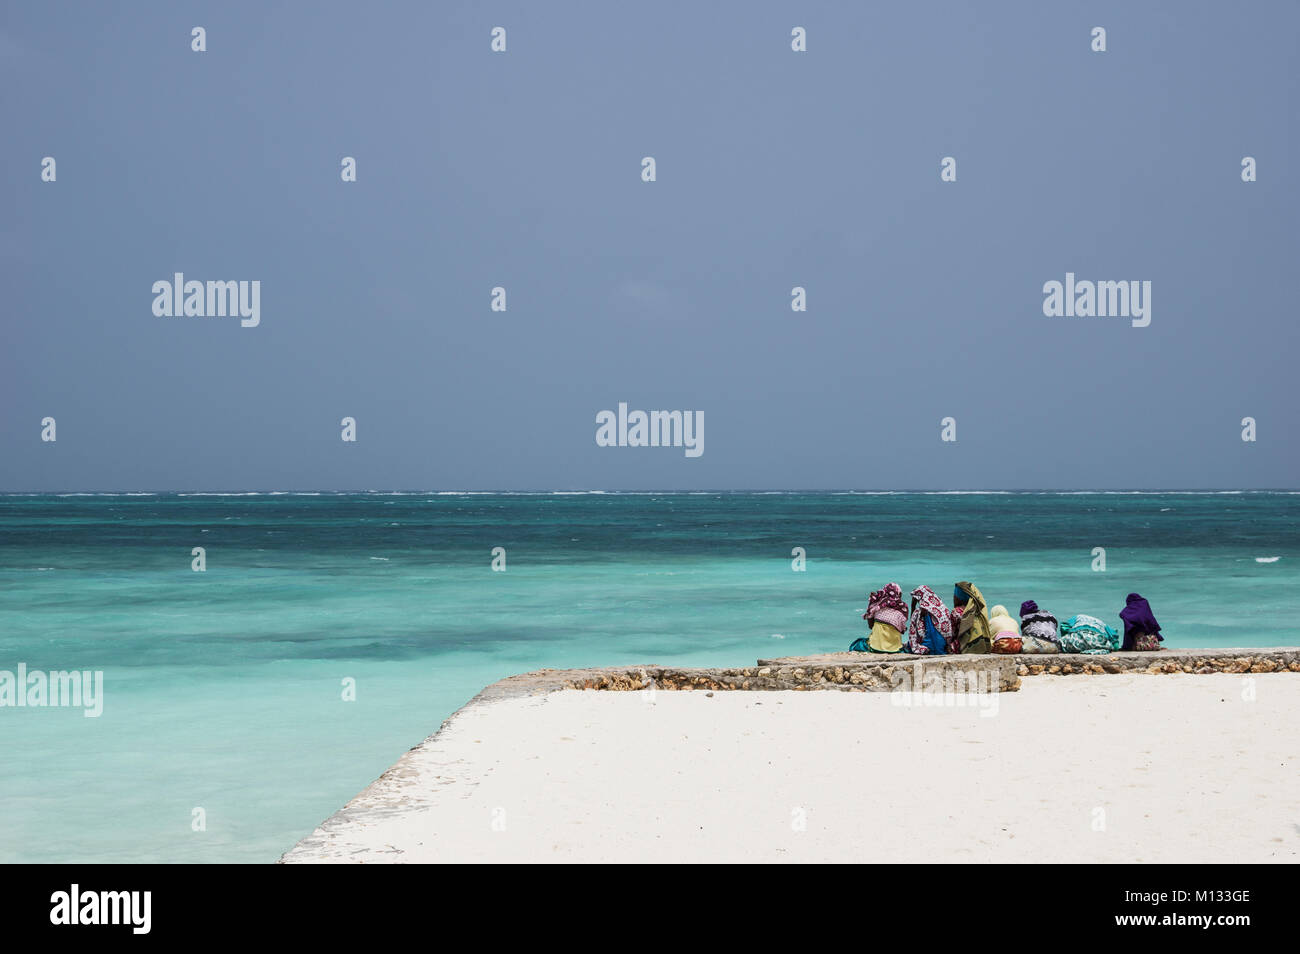 Local children in Nungwi, Zanzibar, Tanzania, sitting before the turquoise water of the Indian Ocean wearing Islamic - Stock Image